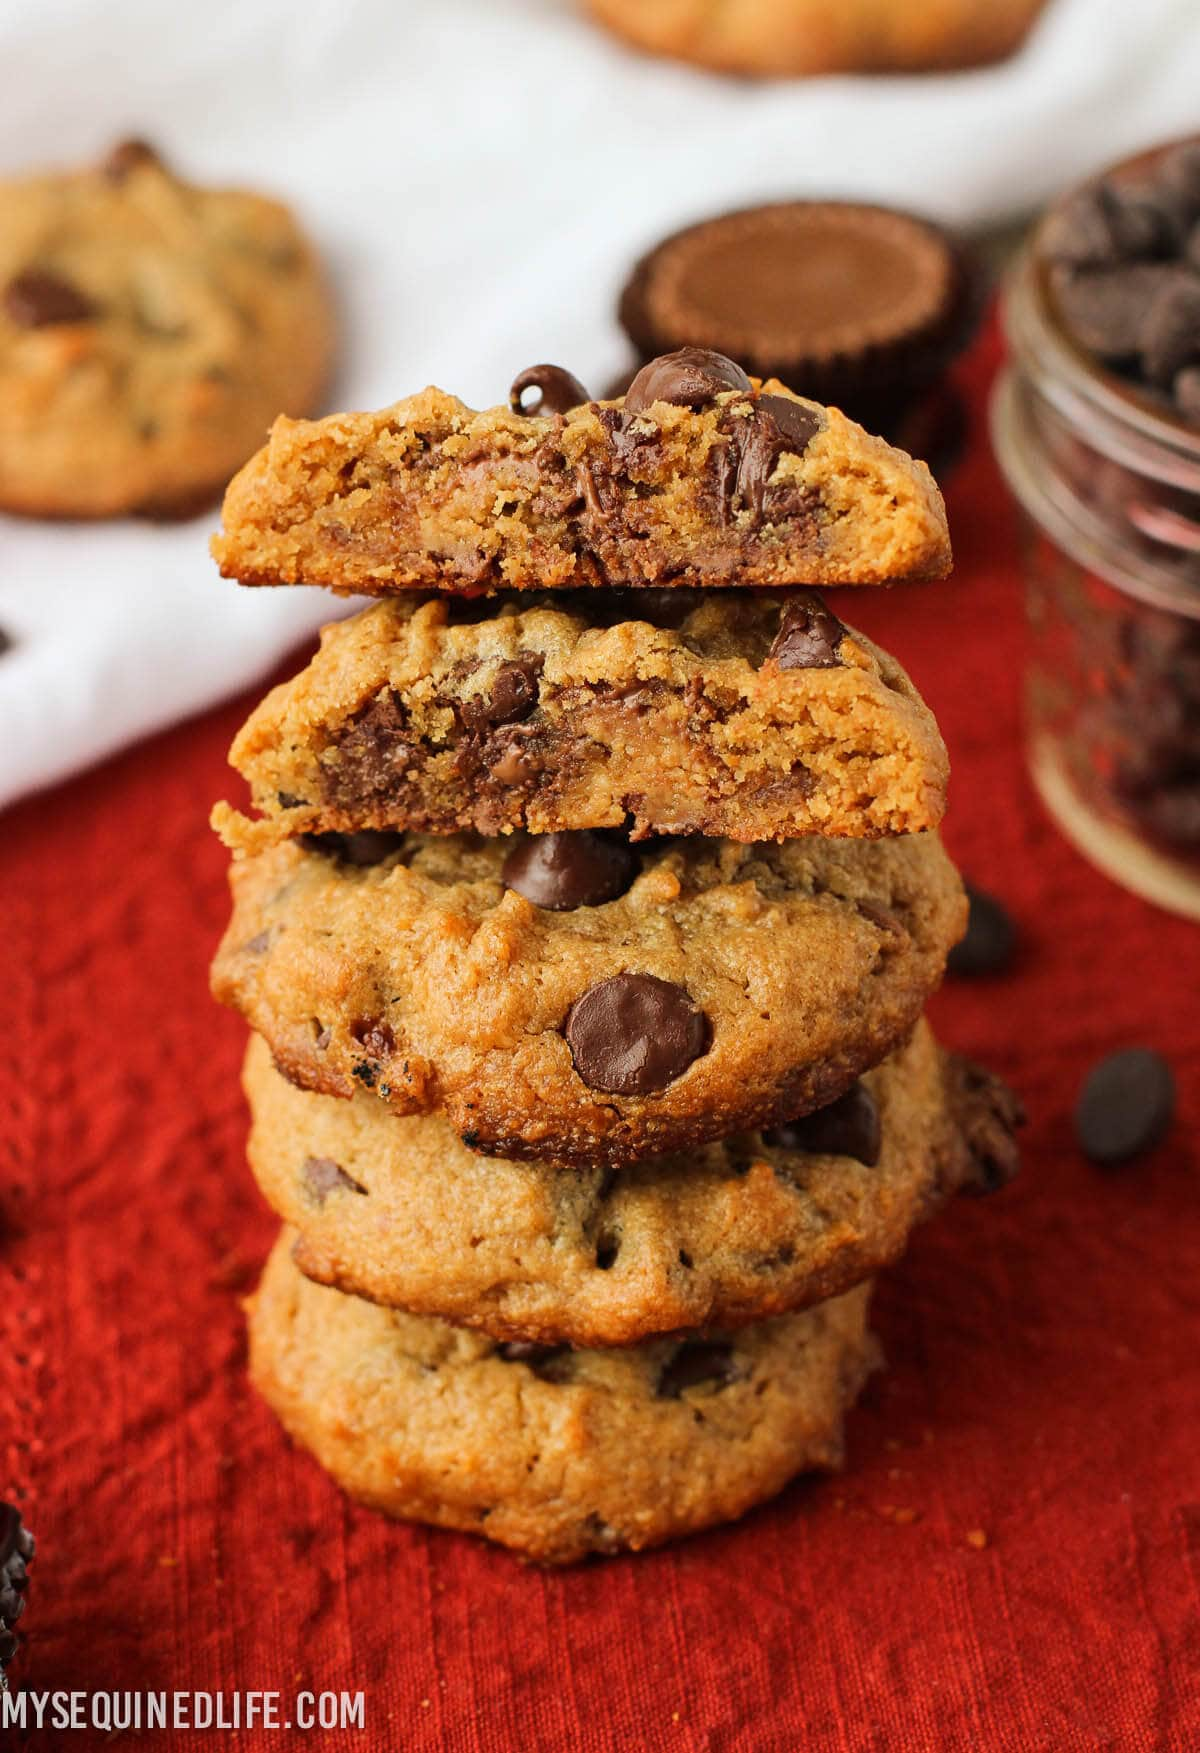 Loaded Chocolate Chip Reese's Peanut Butter Cookies | mysequinedlife.com